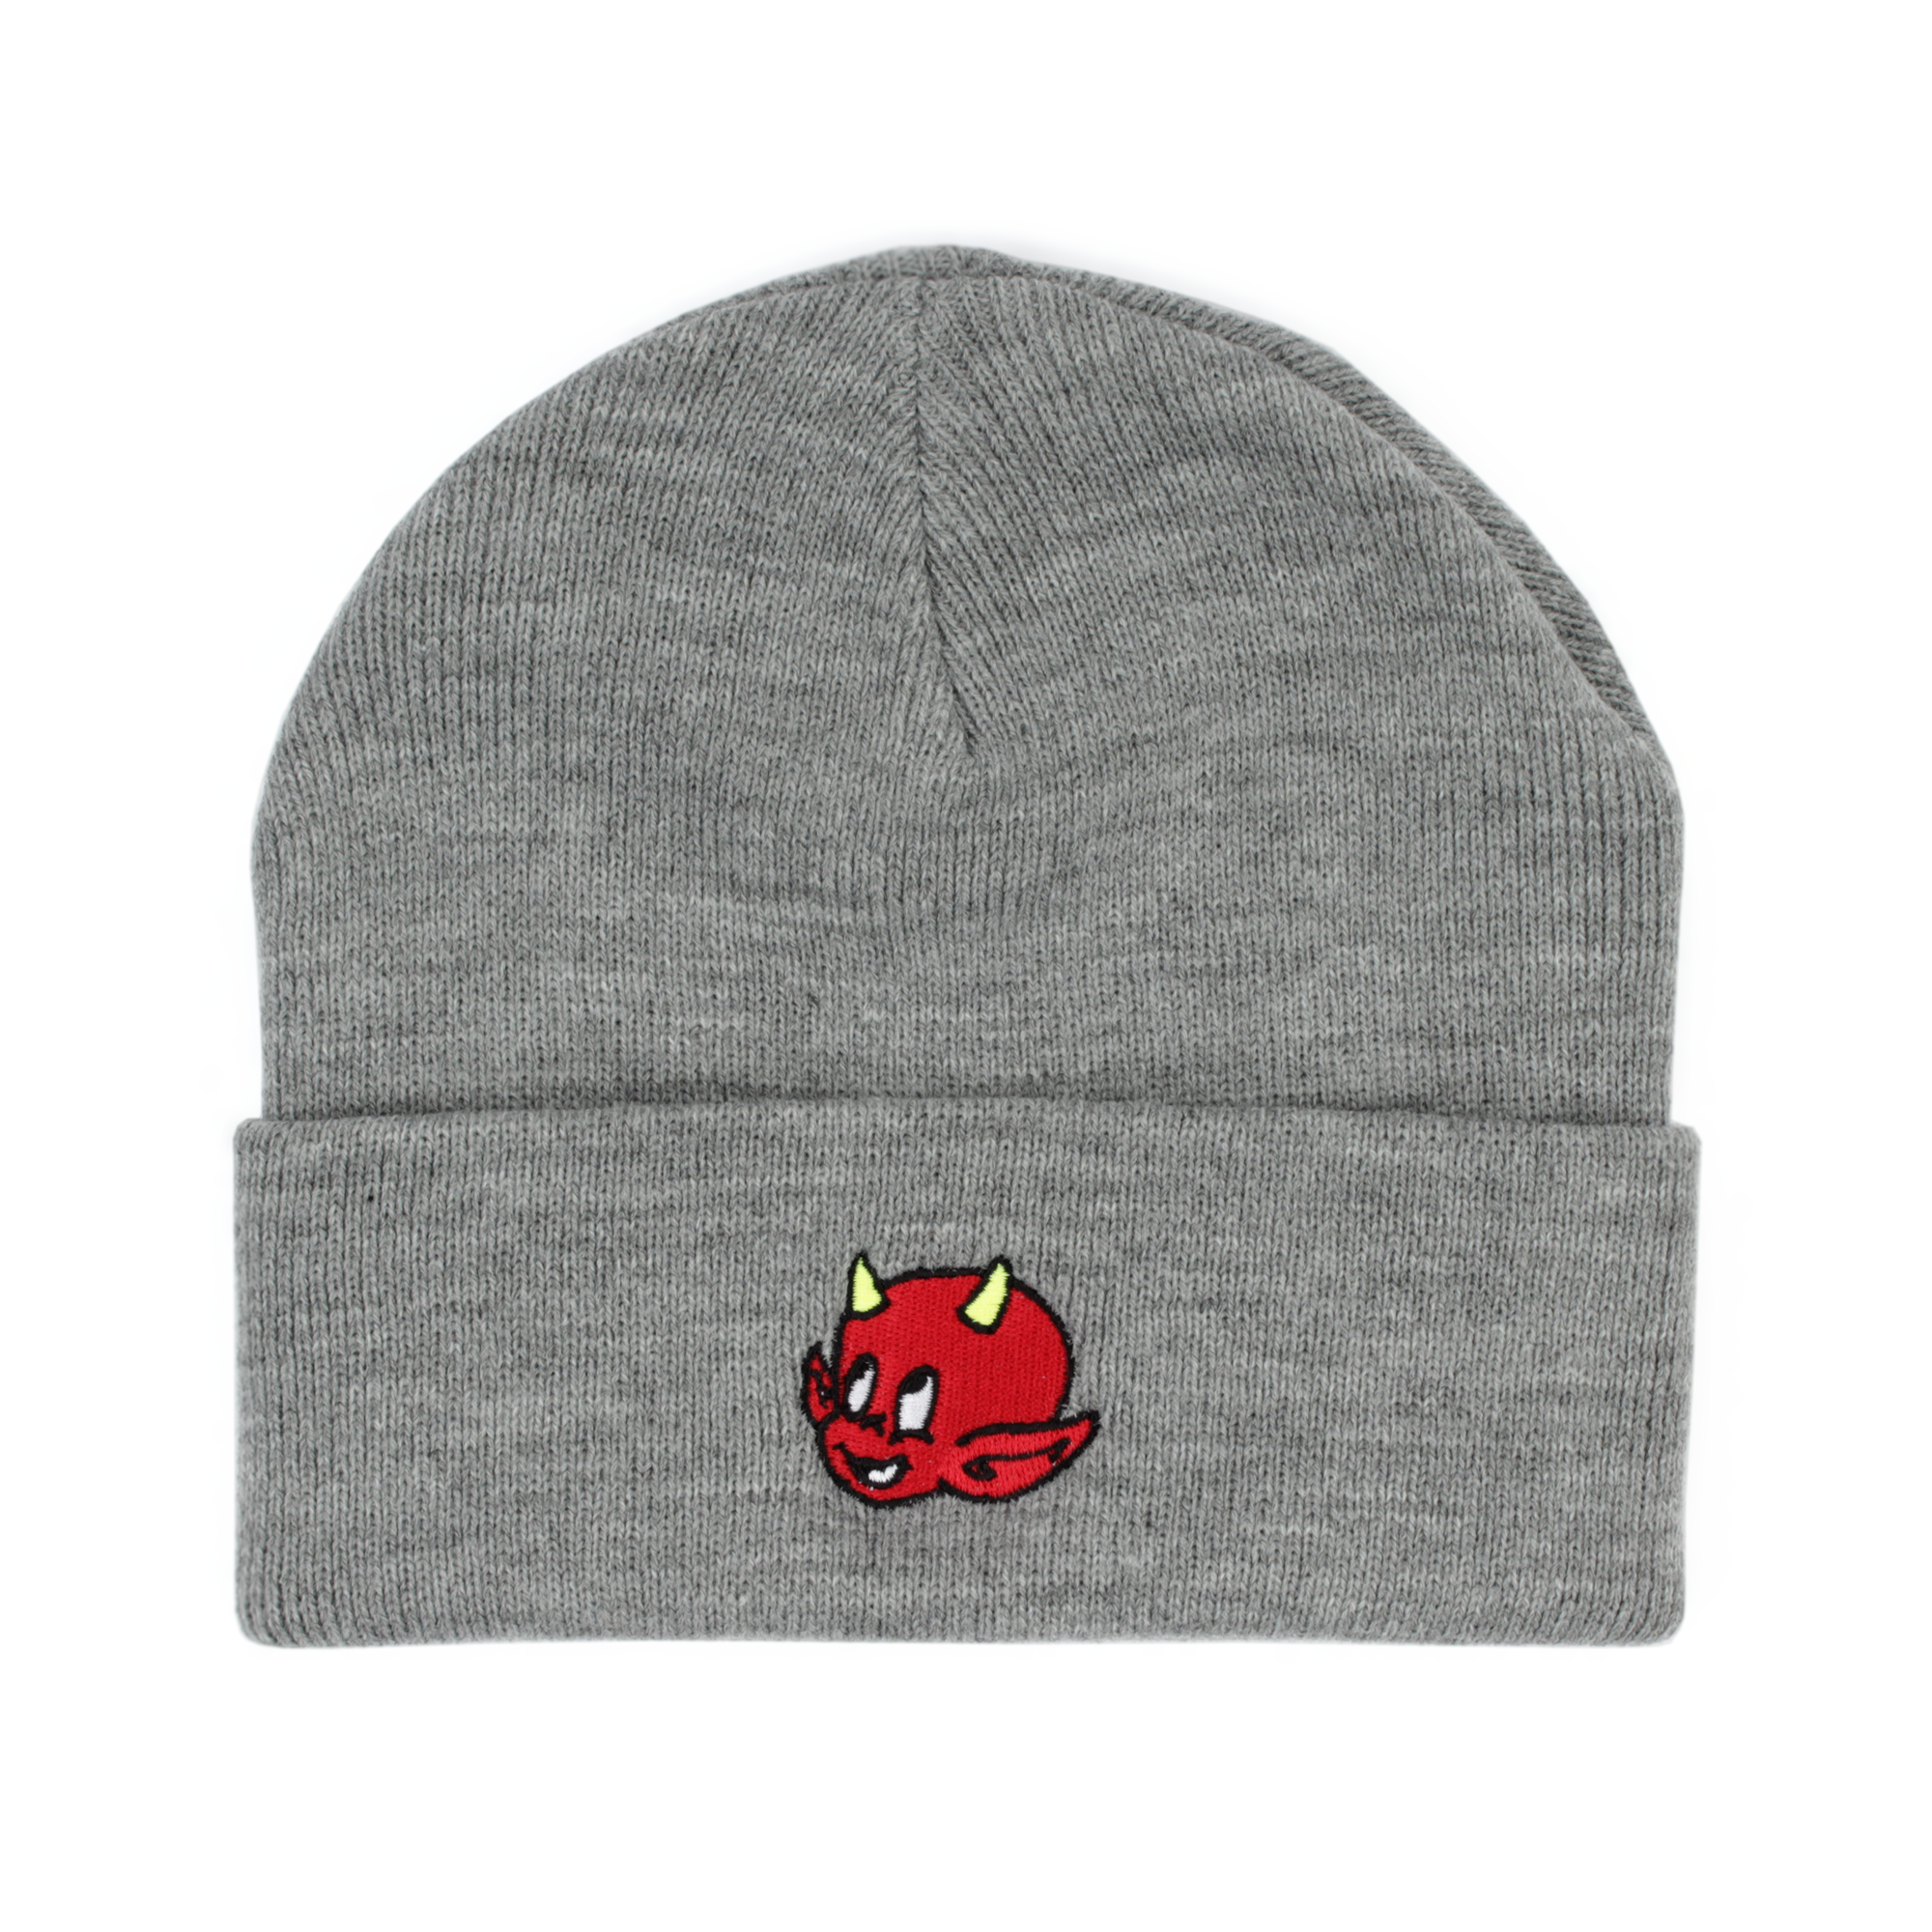 Beyond Hotstuff Beanie Product Photo #1